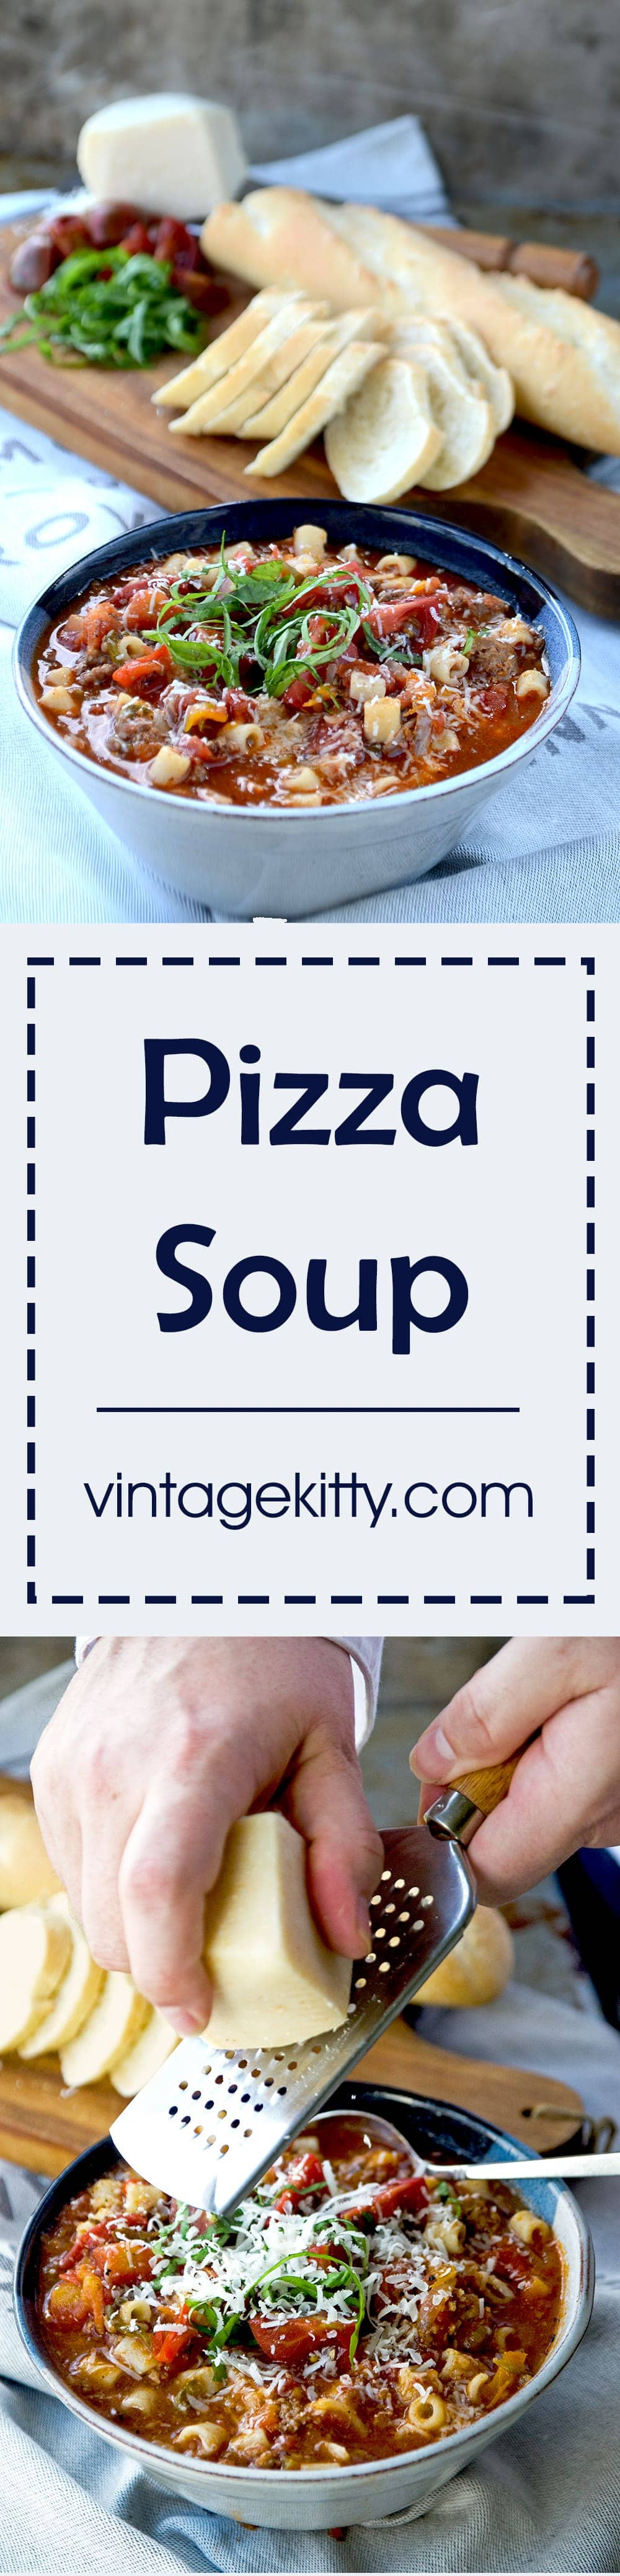 Pizza Soup Pin - Pizza Soup with Peppers, Italian Sausage and Spices